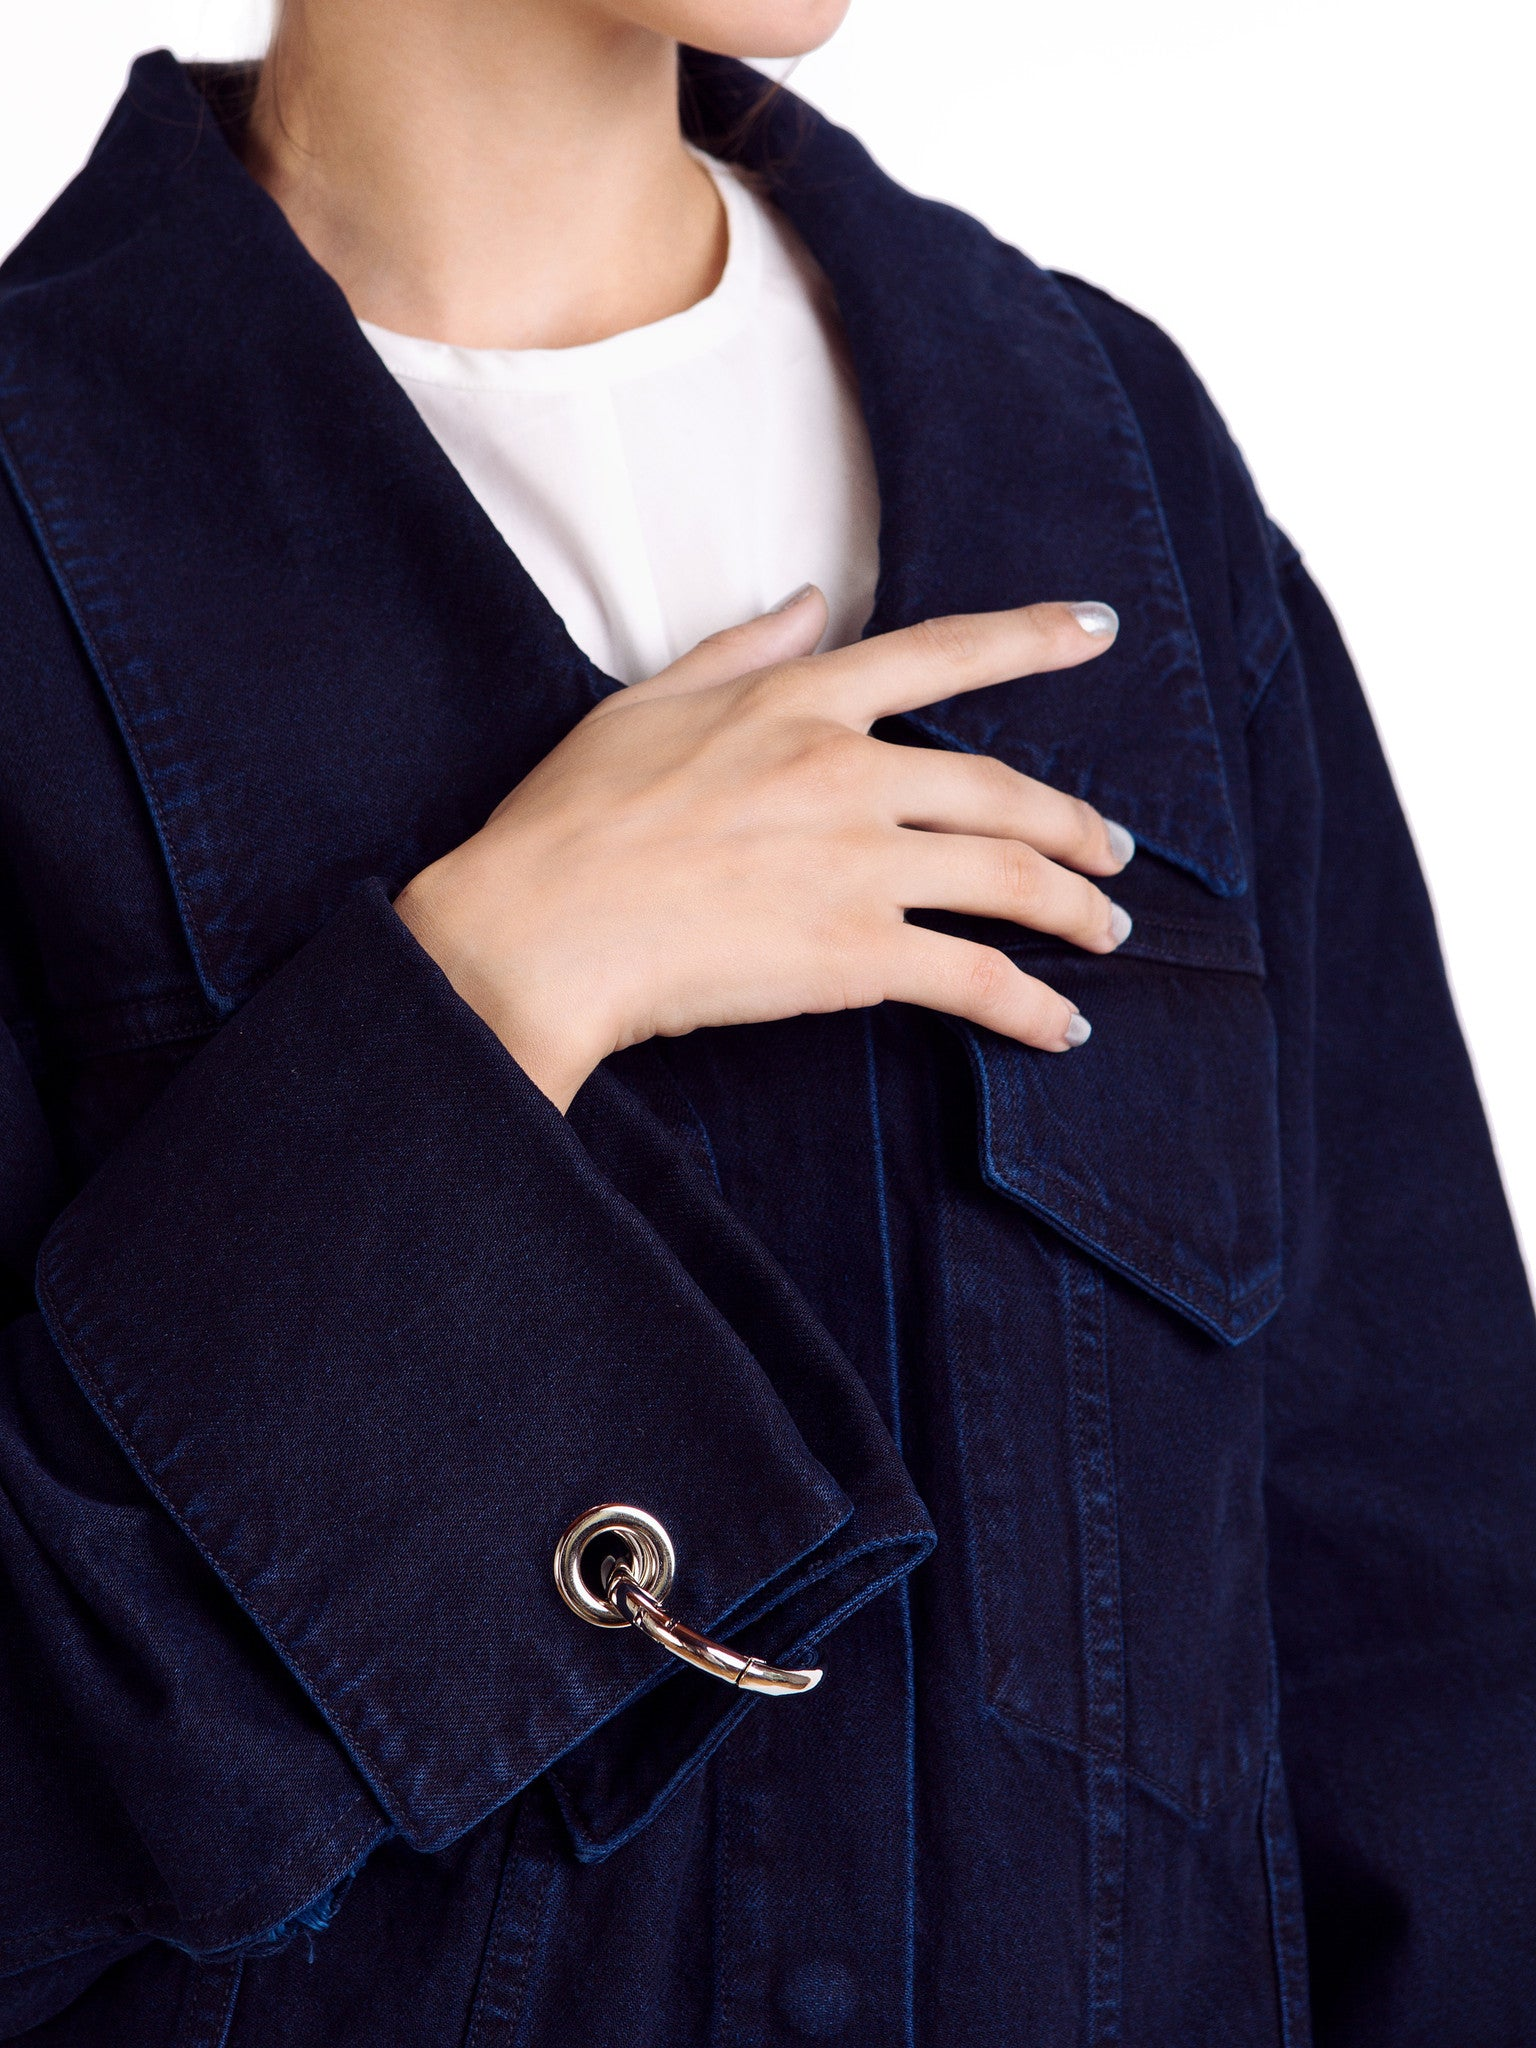 Marques'Almeida Unisex Denim Jacket Detail